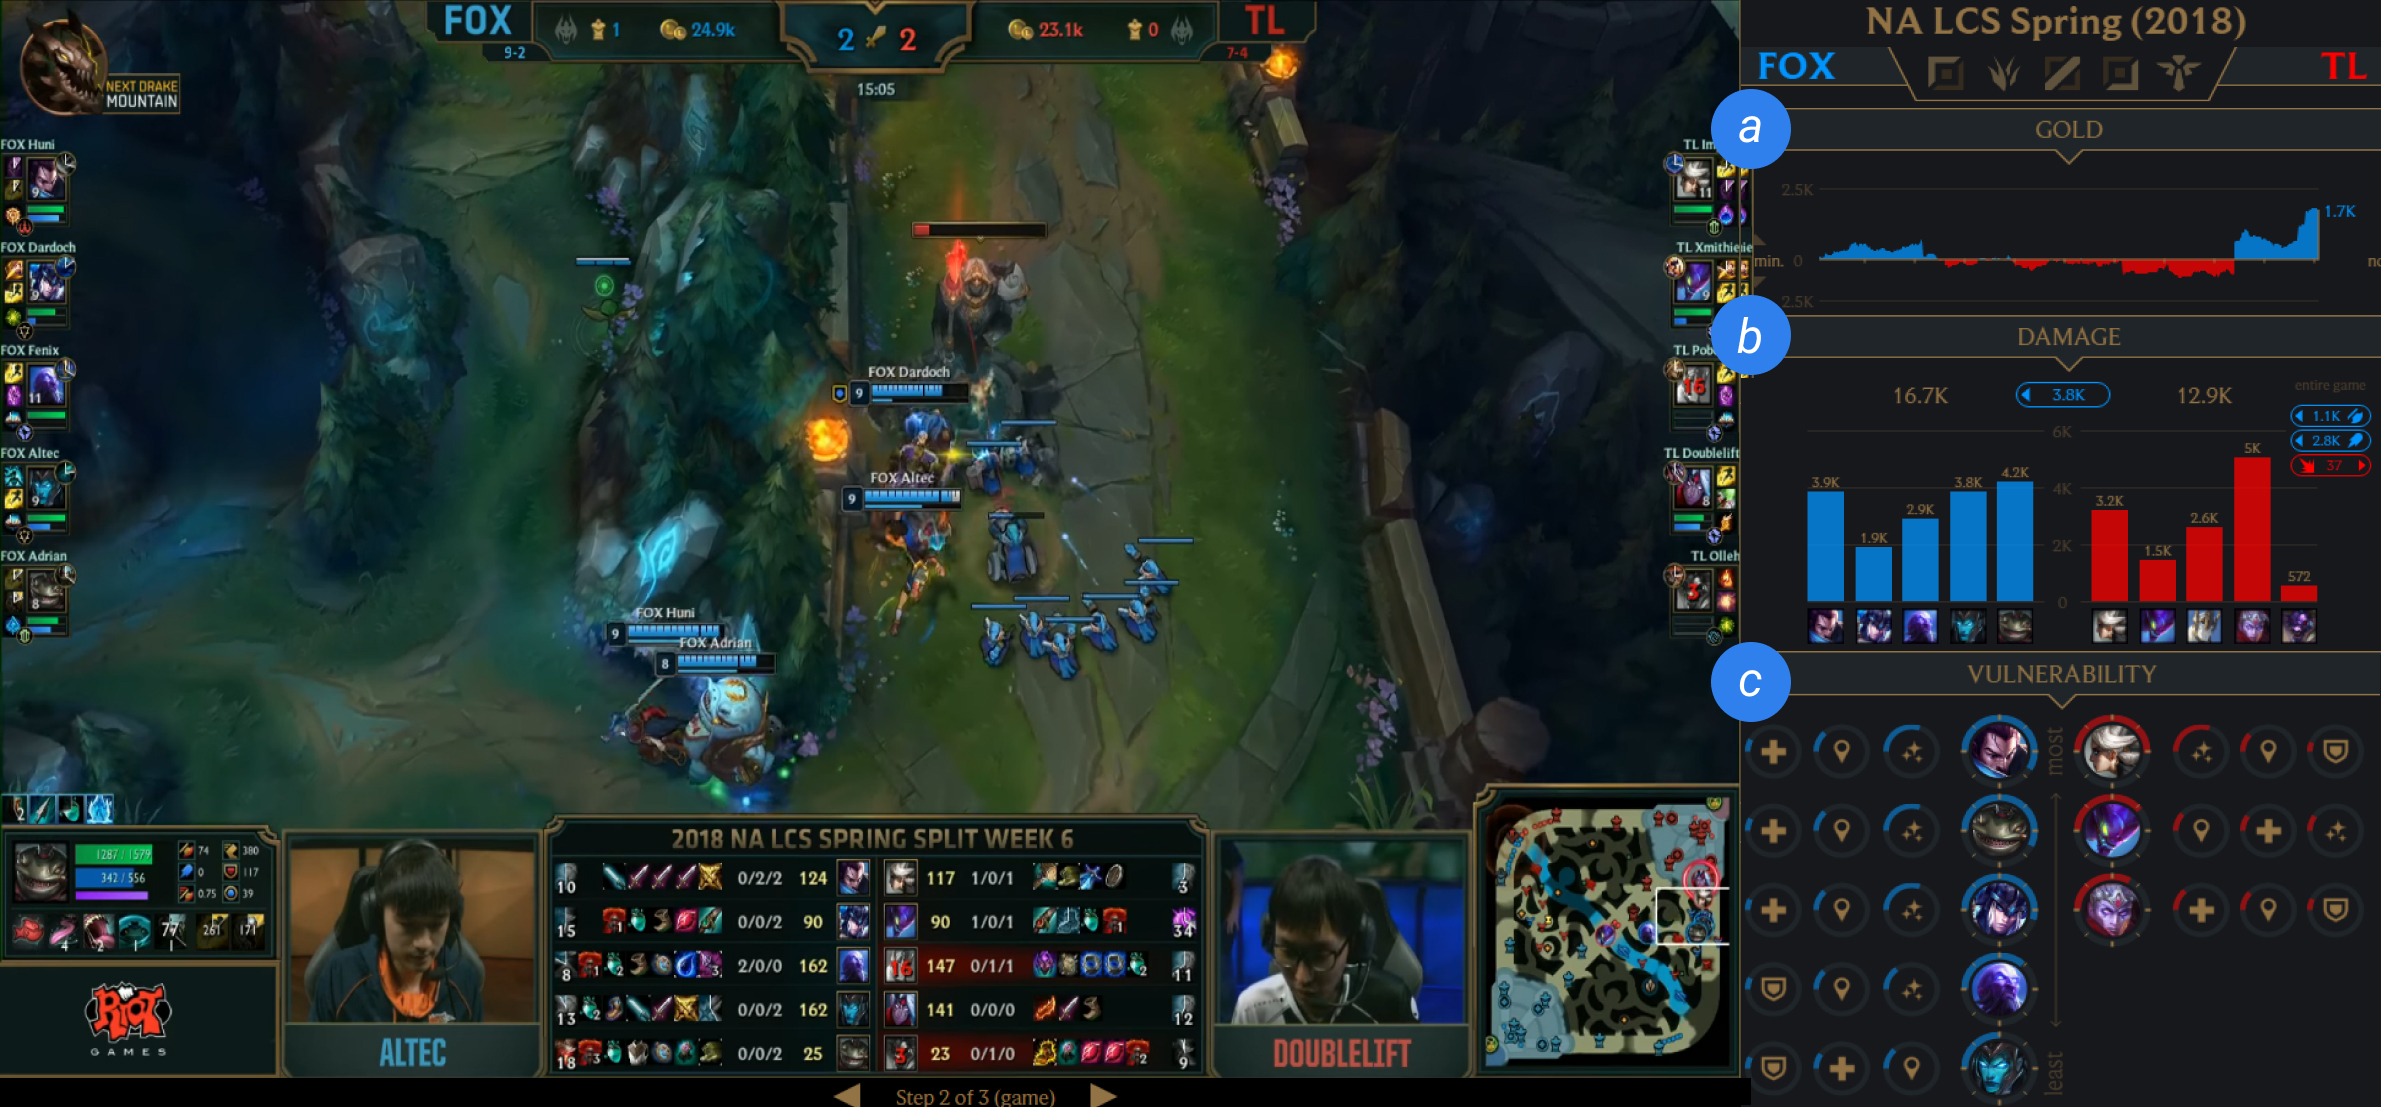 Real-Time Dashboards to Support eSports Spectating - Towards